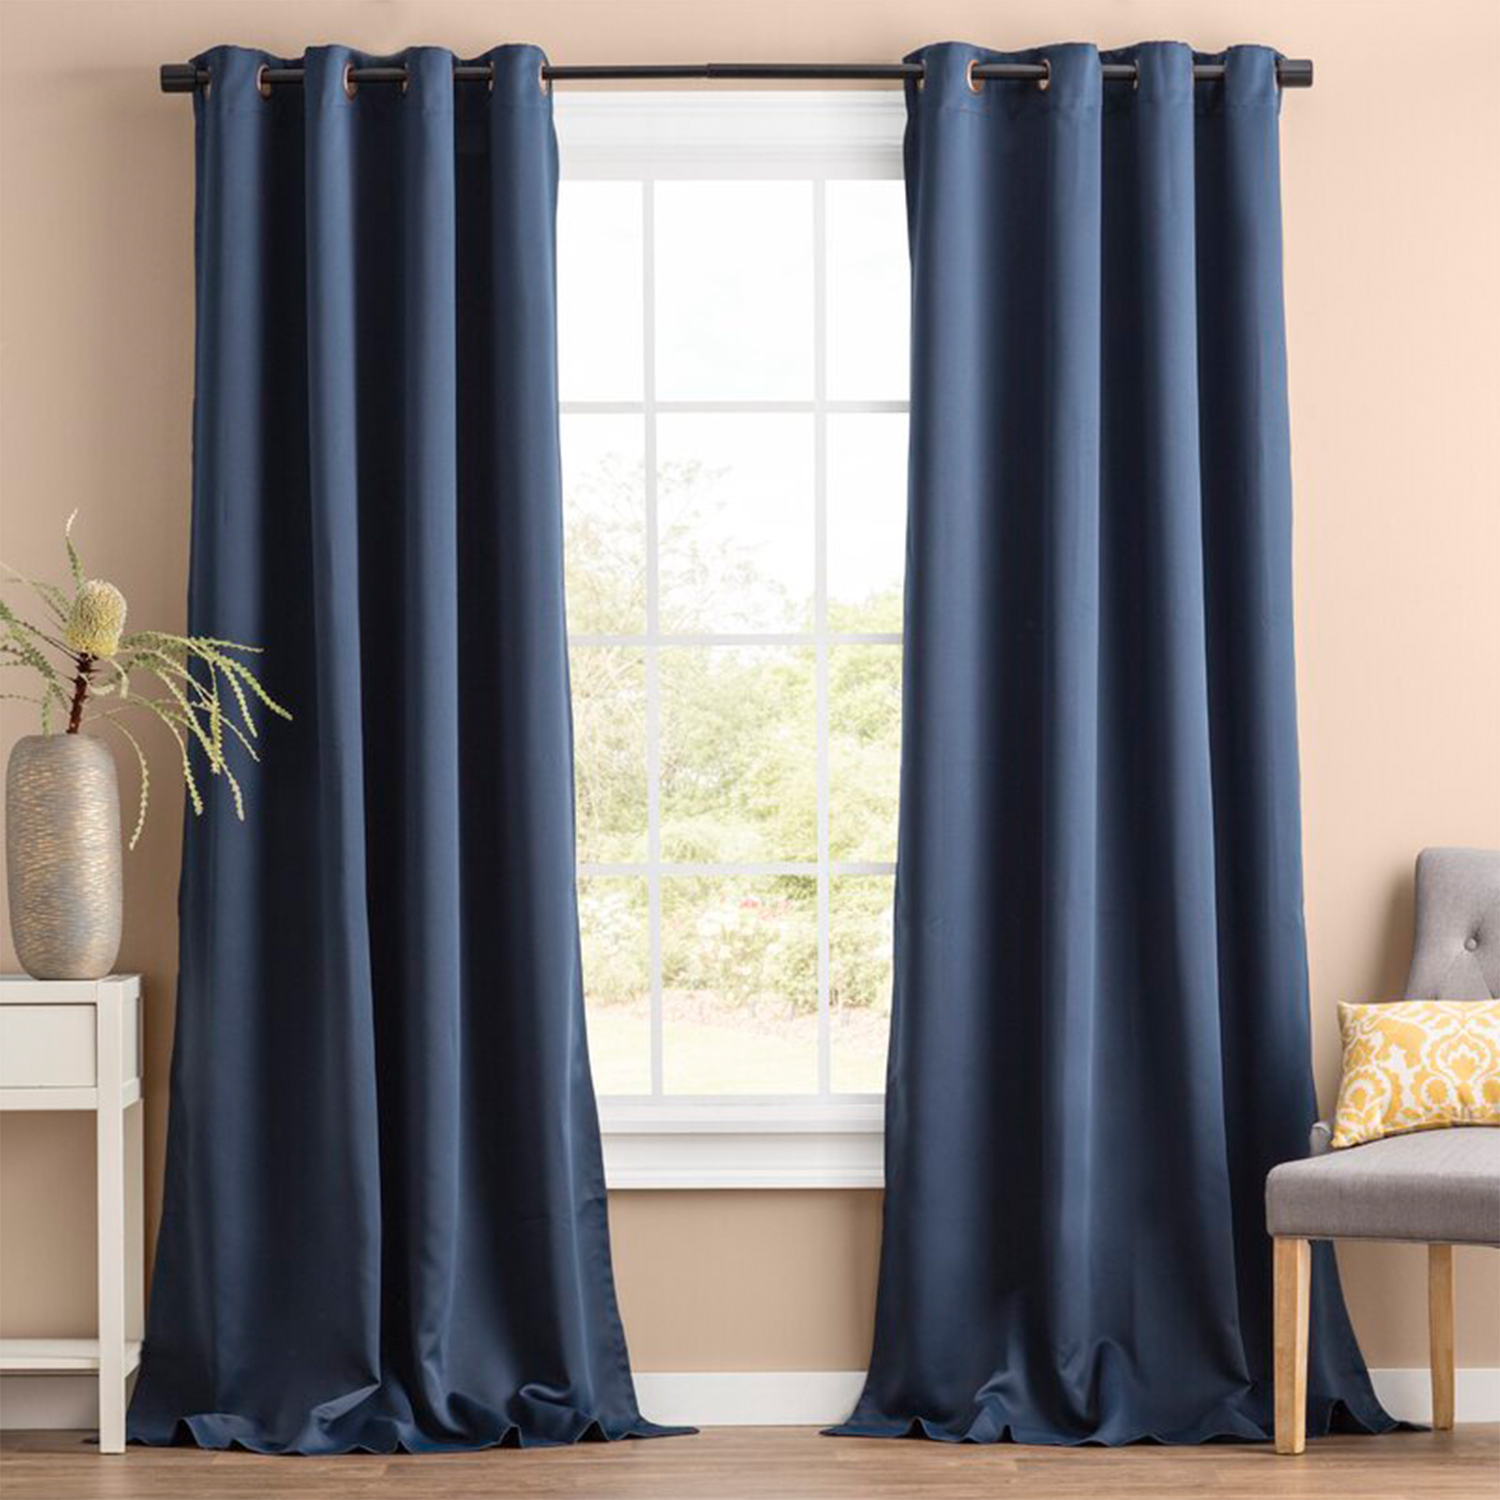 Thermal Grommet Curtain Panels